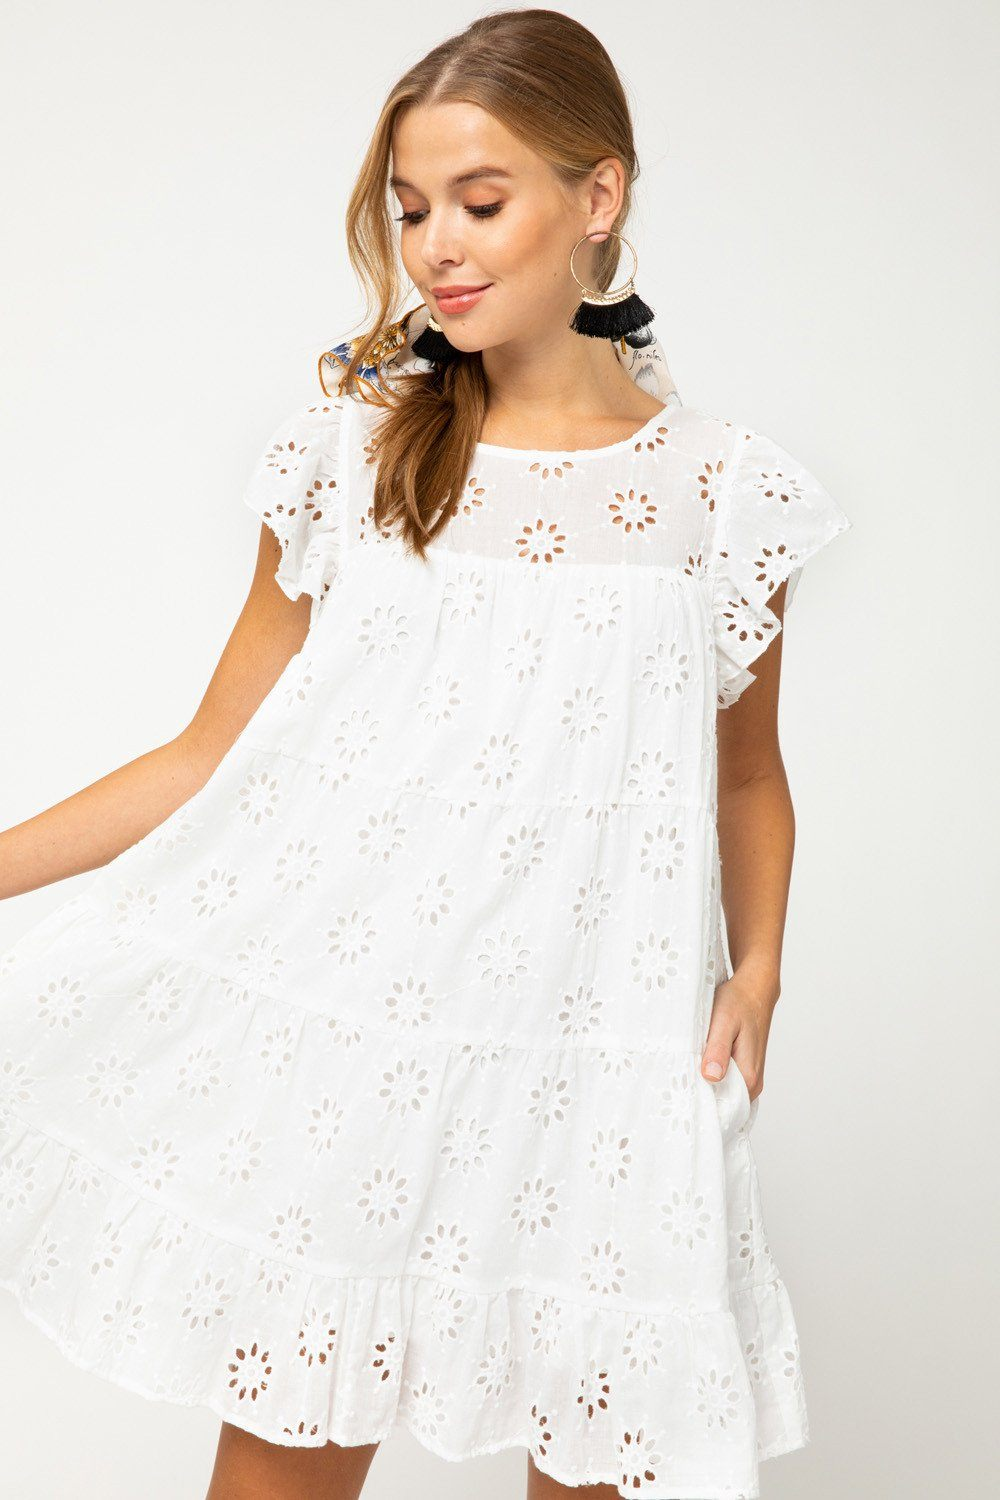 Sunshine In My Life White Eyelet Lace Dress - Caroline Hill